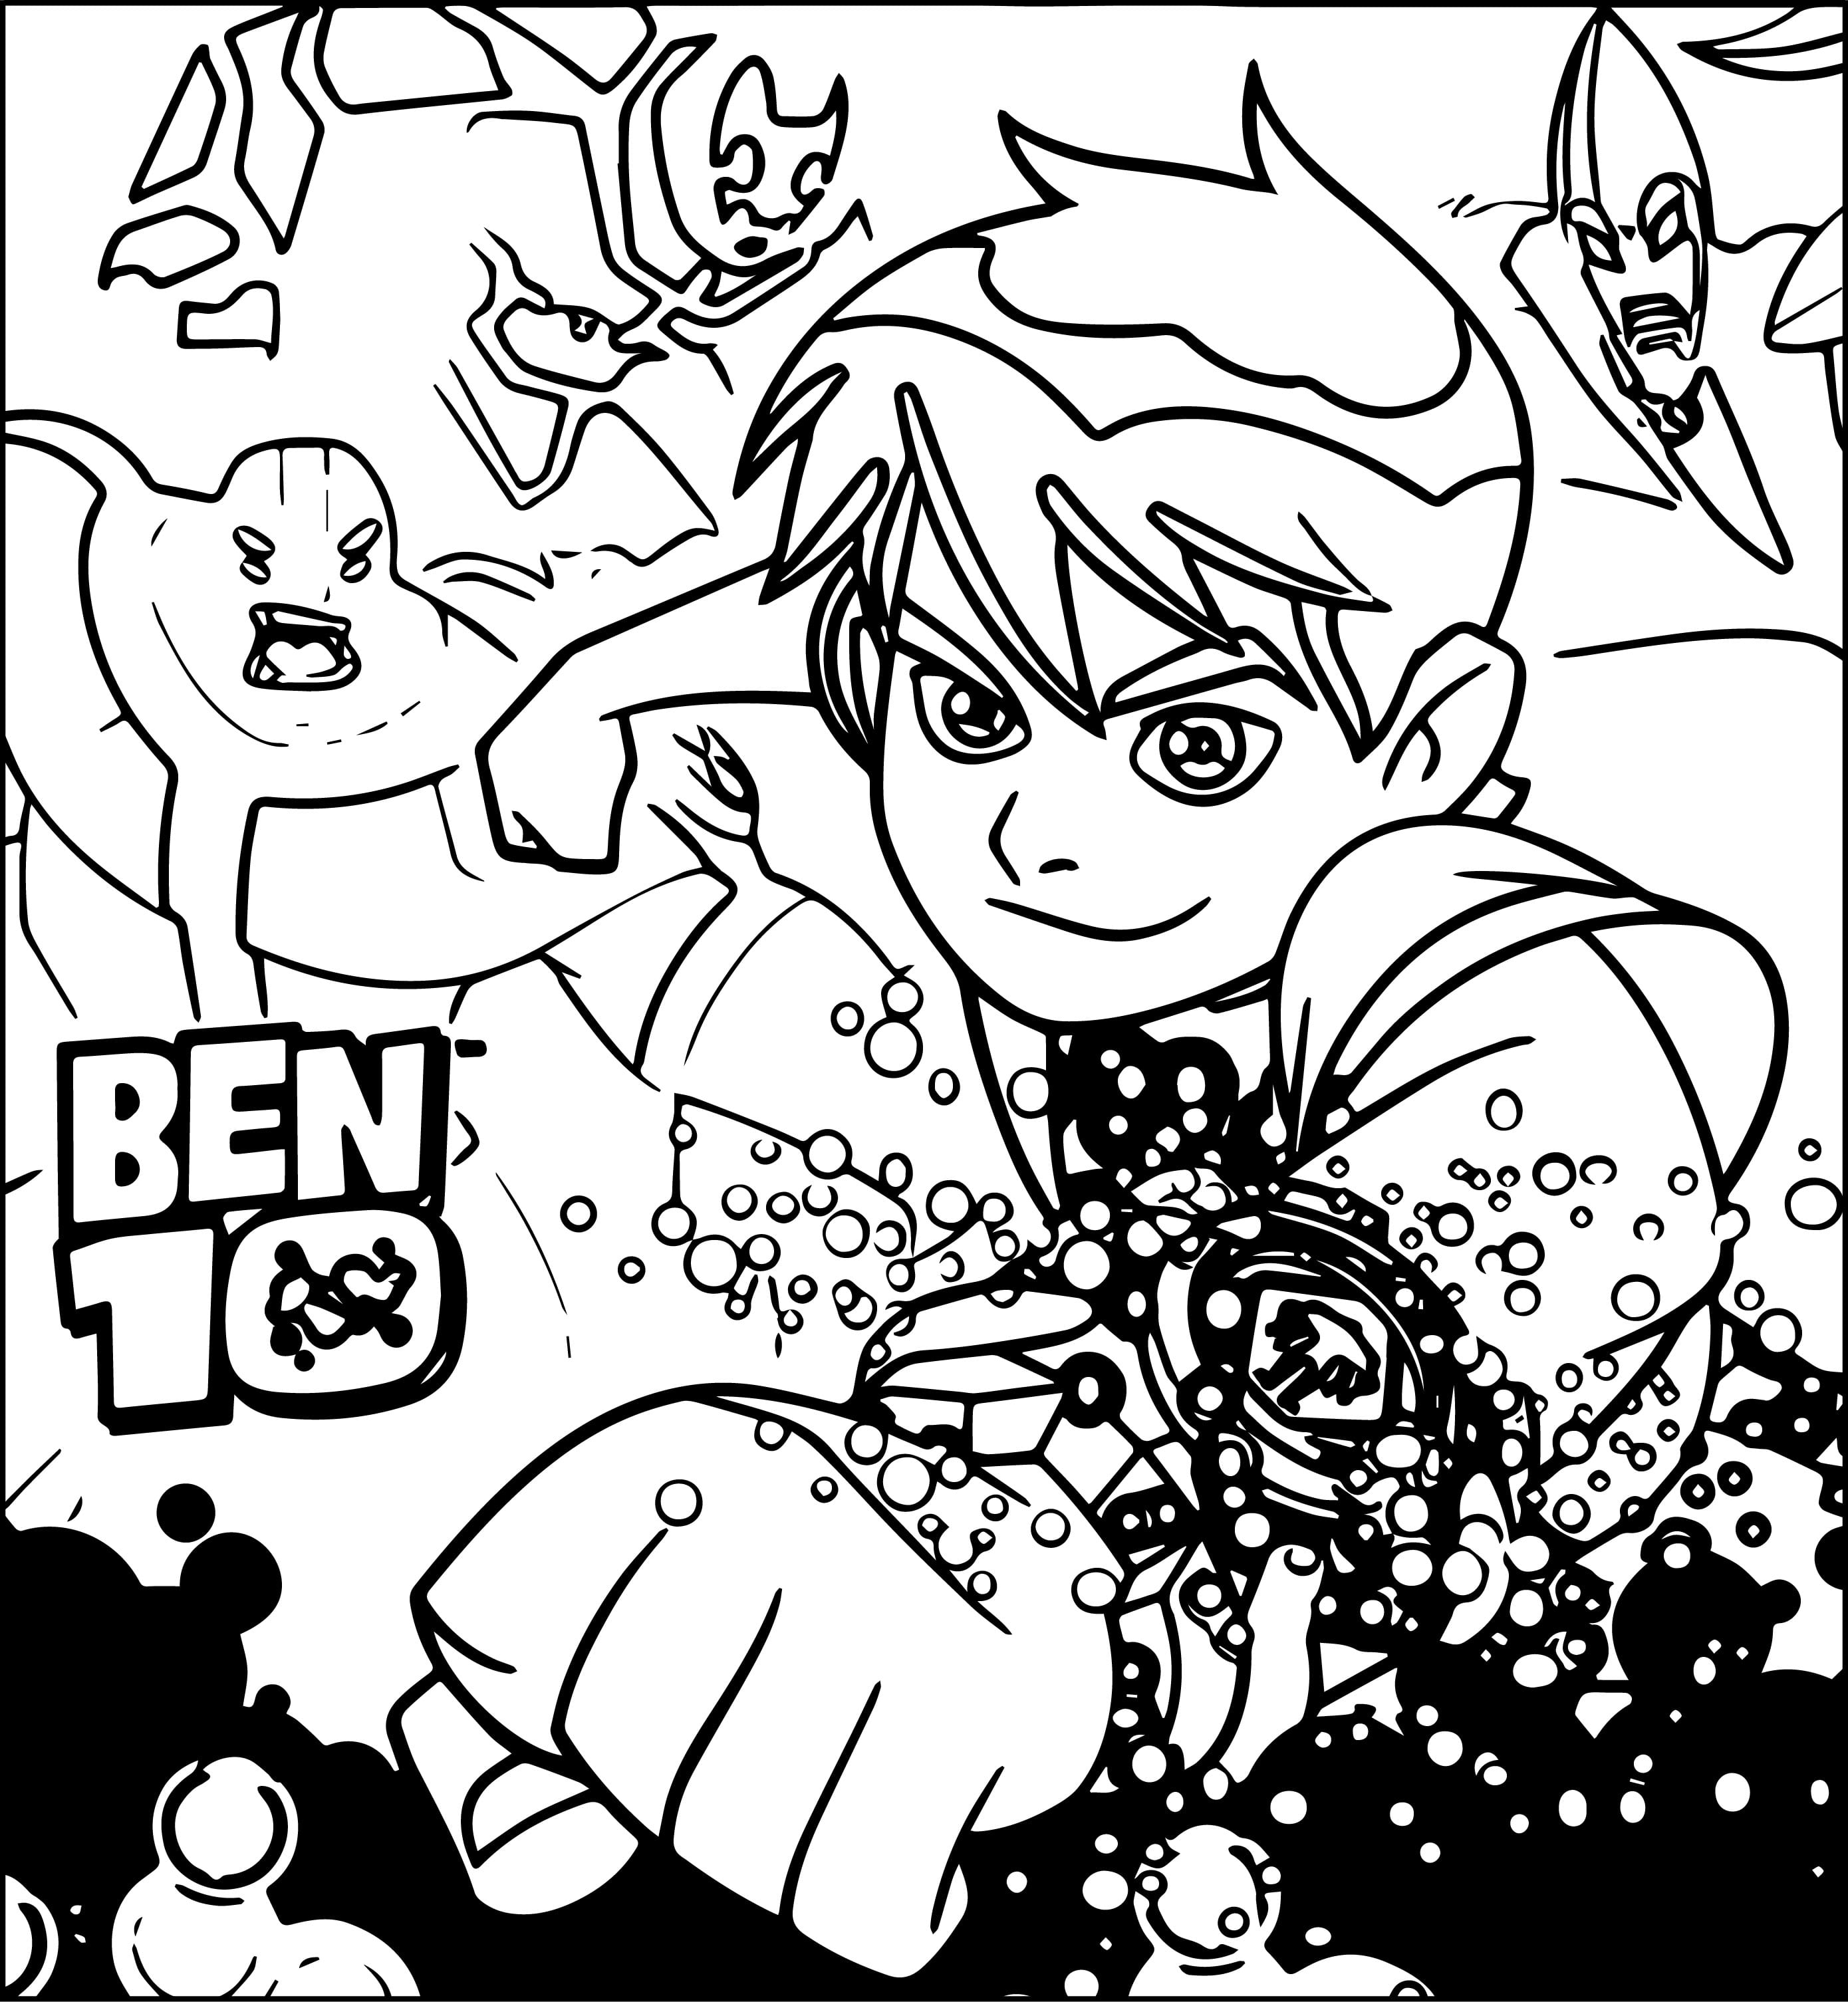 Ben 10 Coloring Pages Free Coloring Pages Coloring Pages 1309